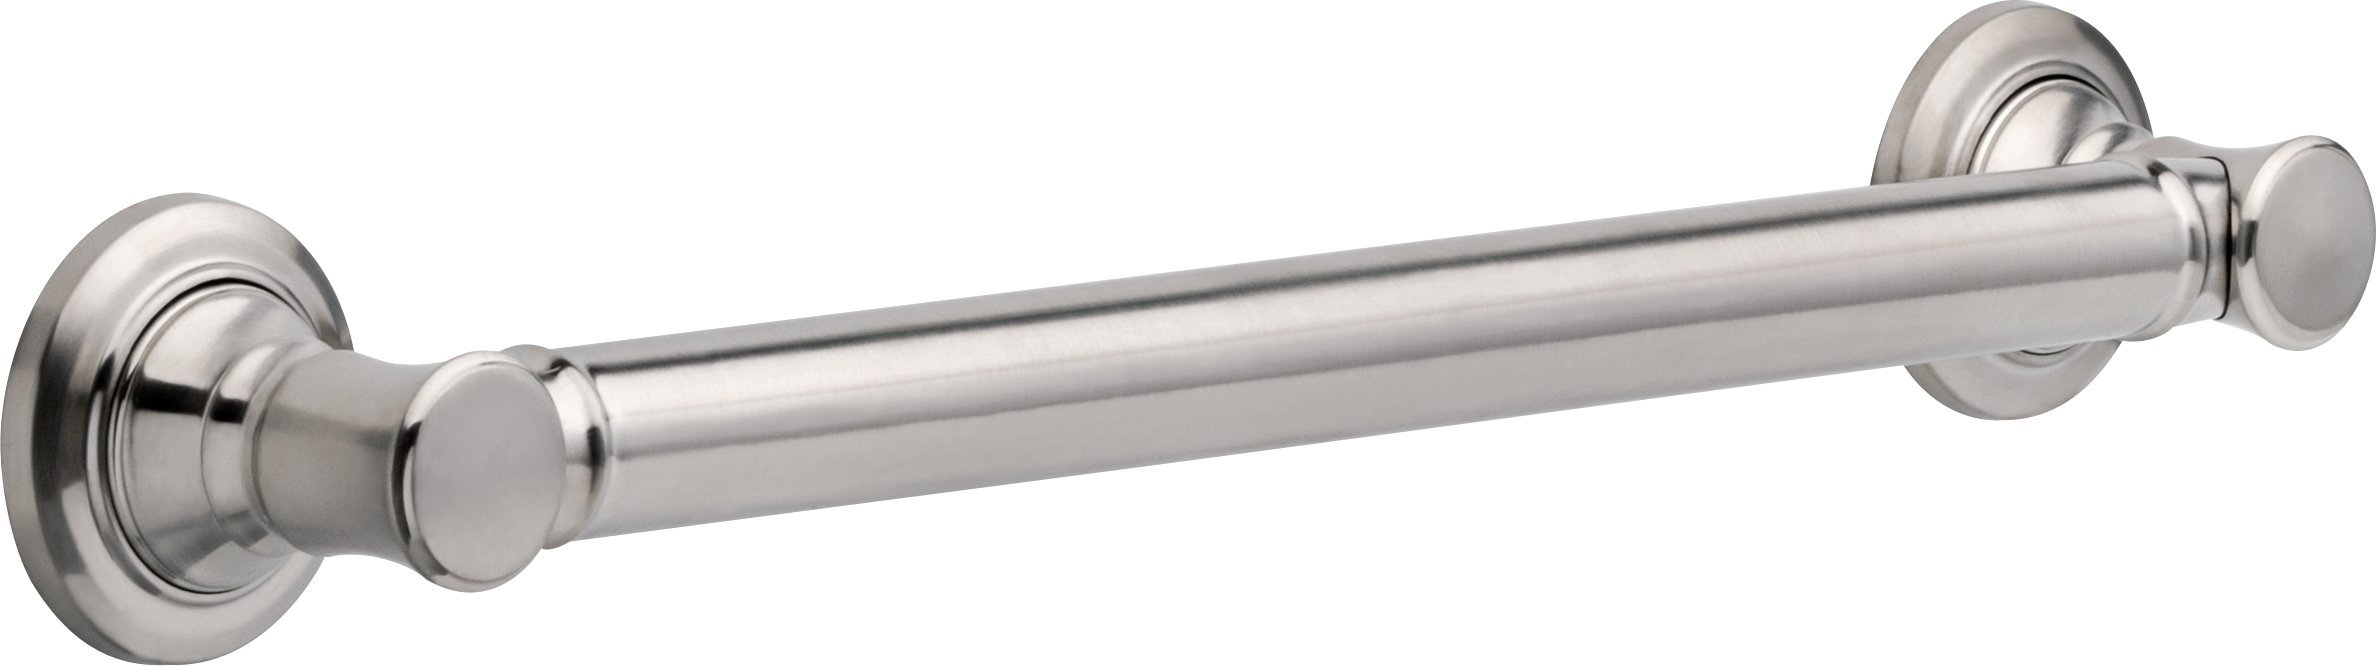 Delta Faucet 41618-SS Traditional Bathroom Safety Grab Bar, 18-Inch, Stainless